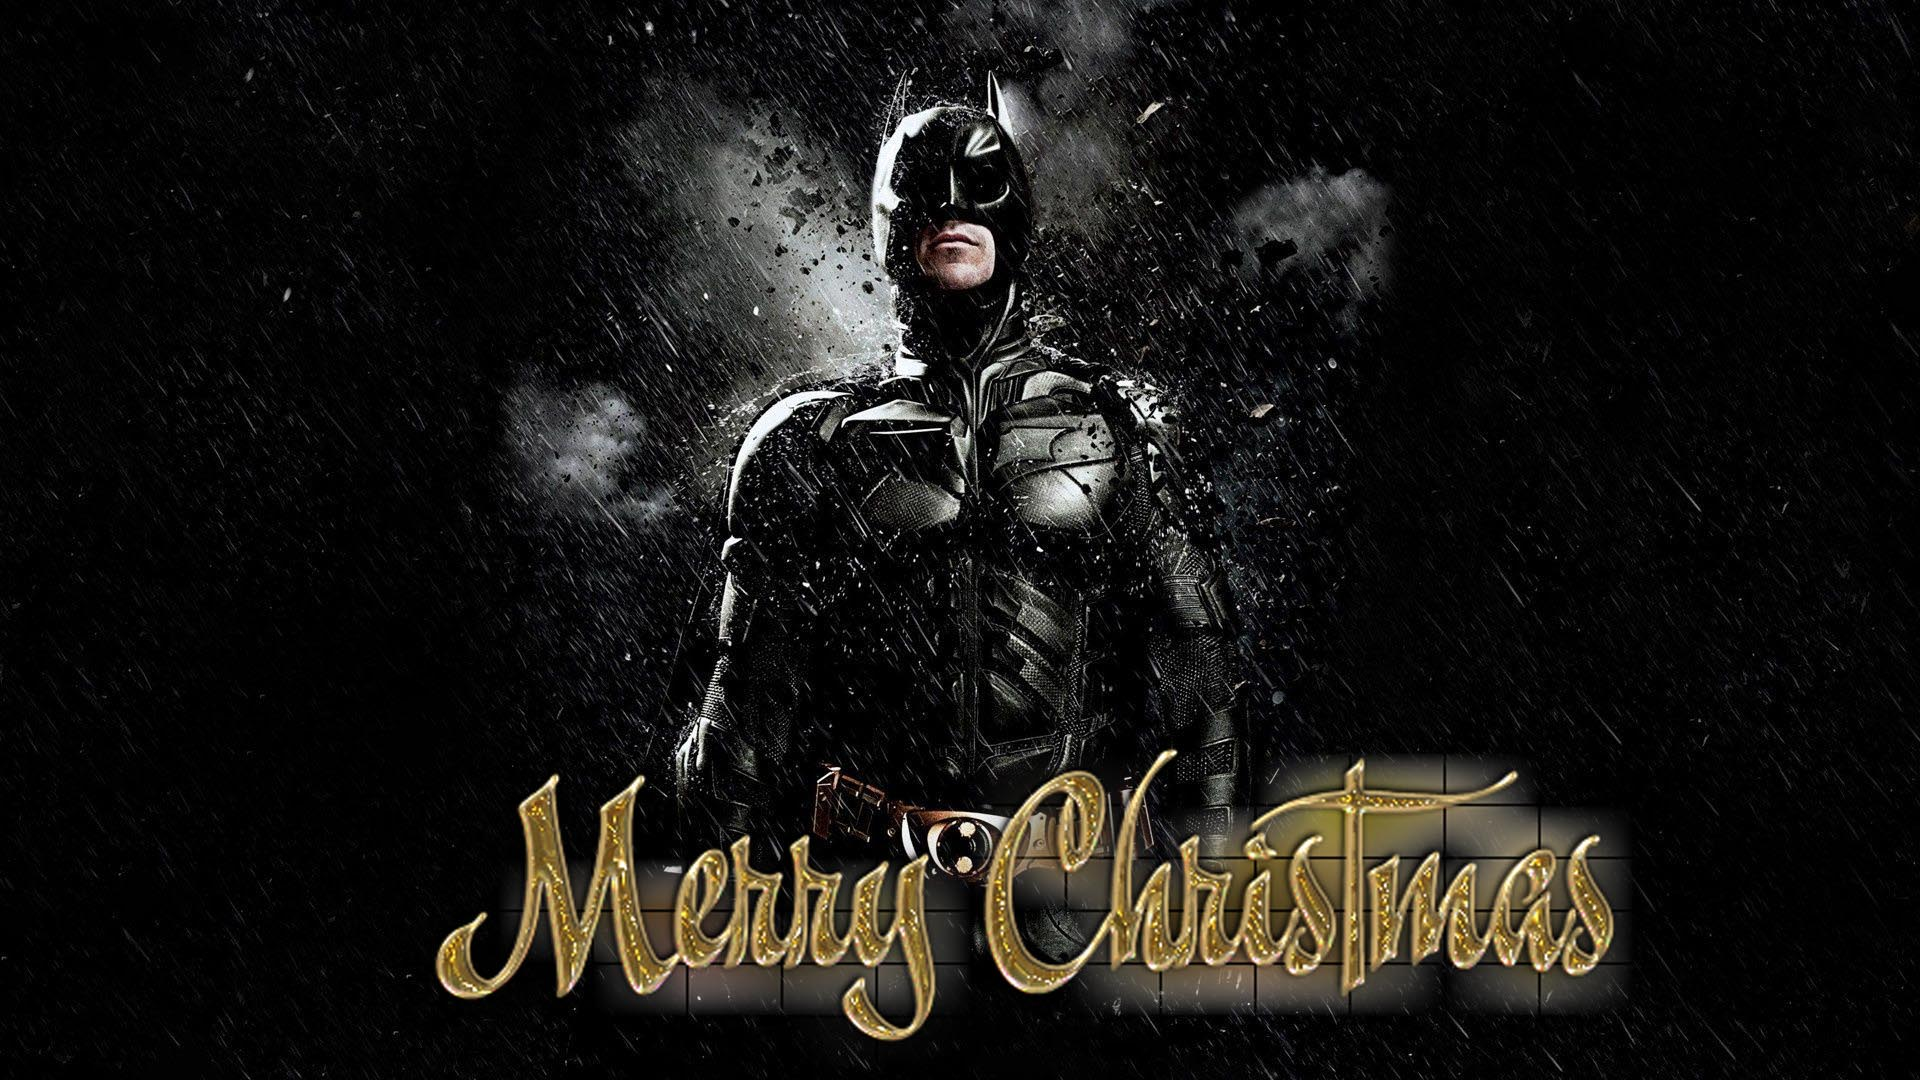 happy merry christmas wishes super hero batman kids hd wallpaper